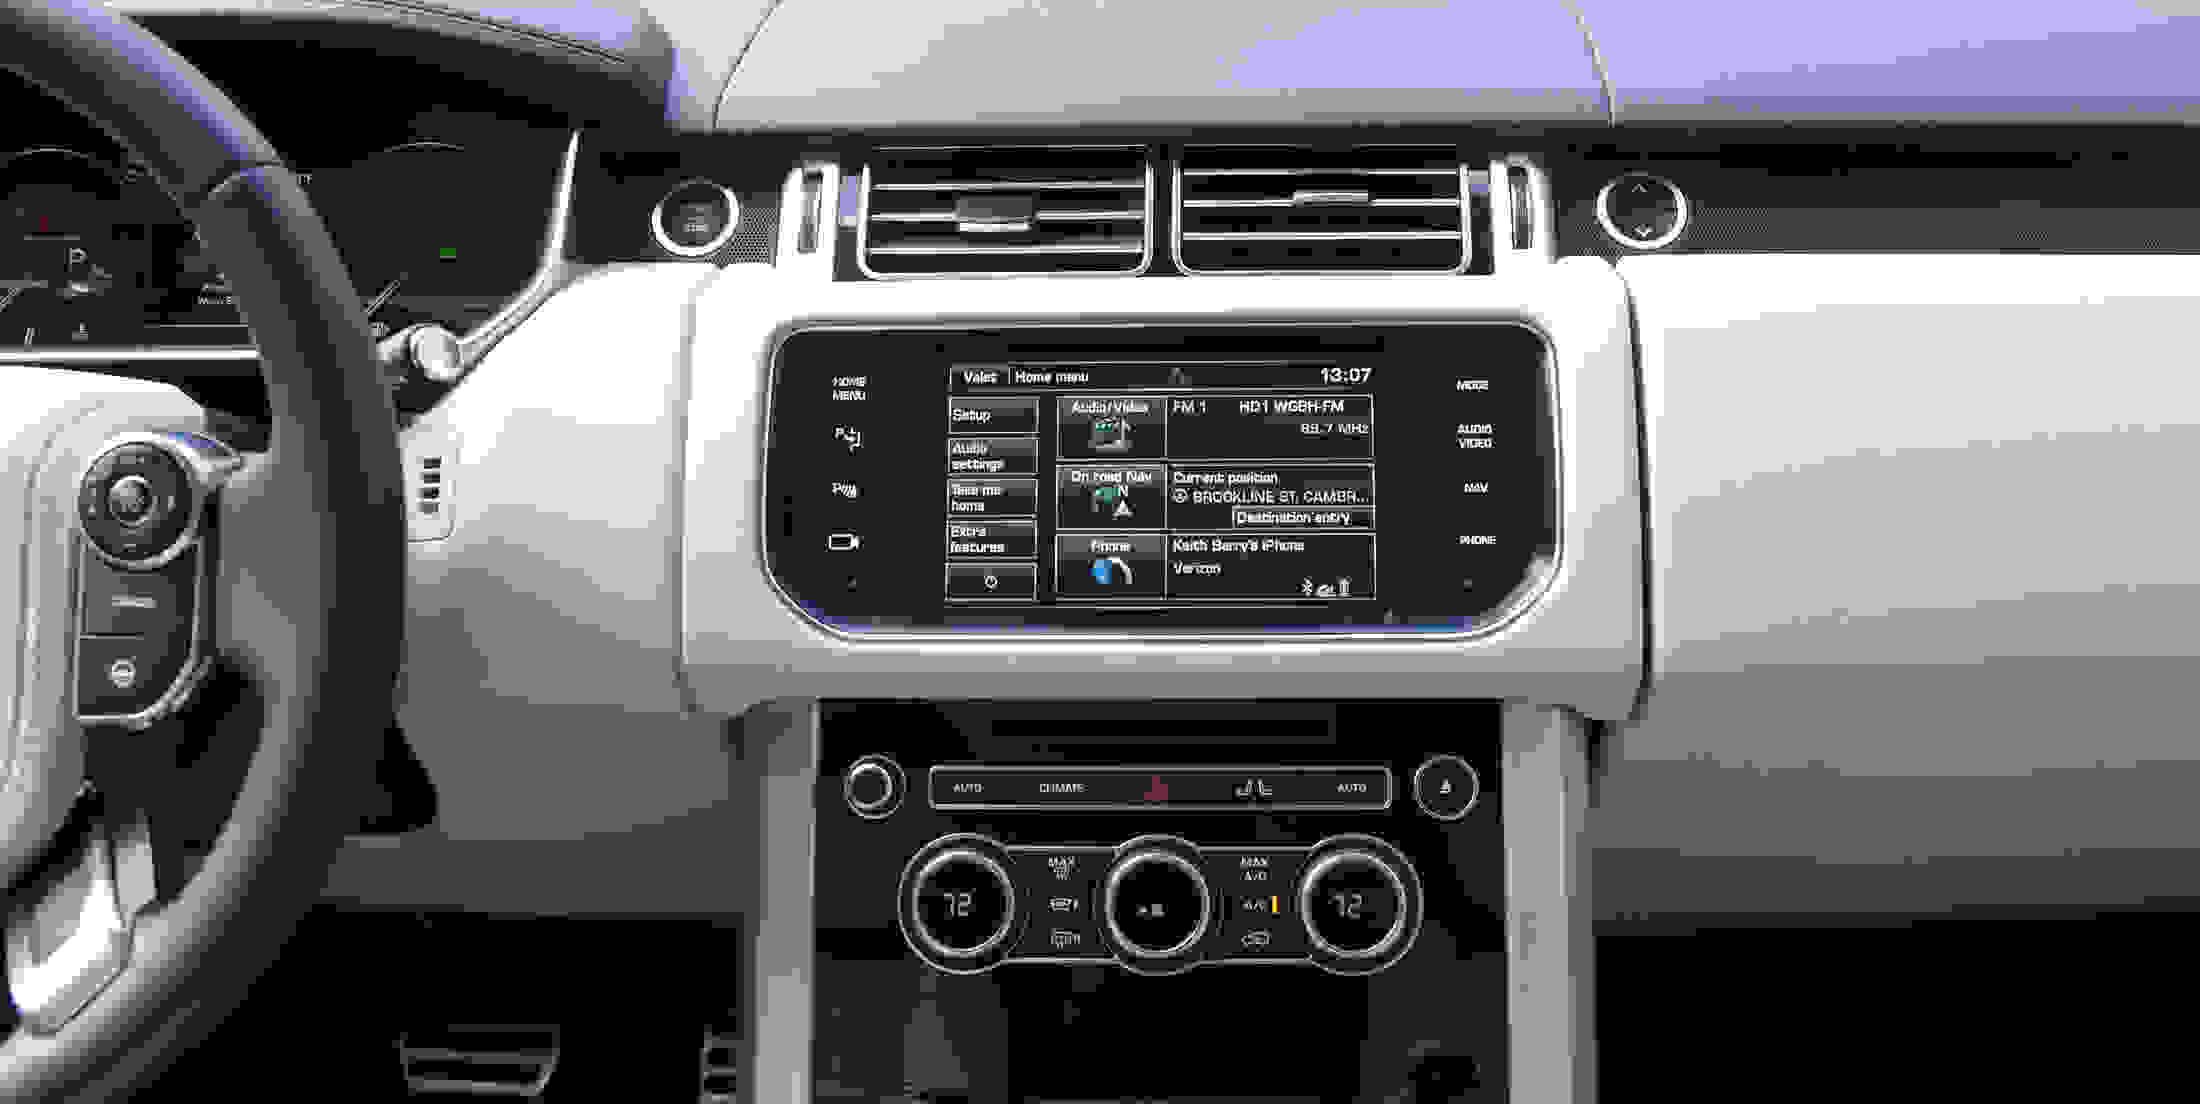 Range Rover's outdated nav system